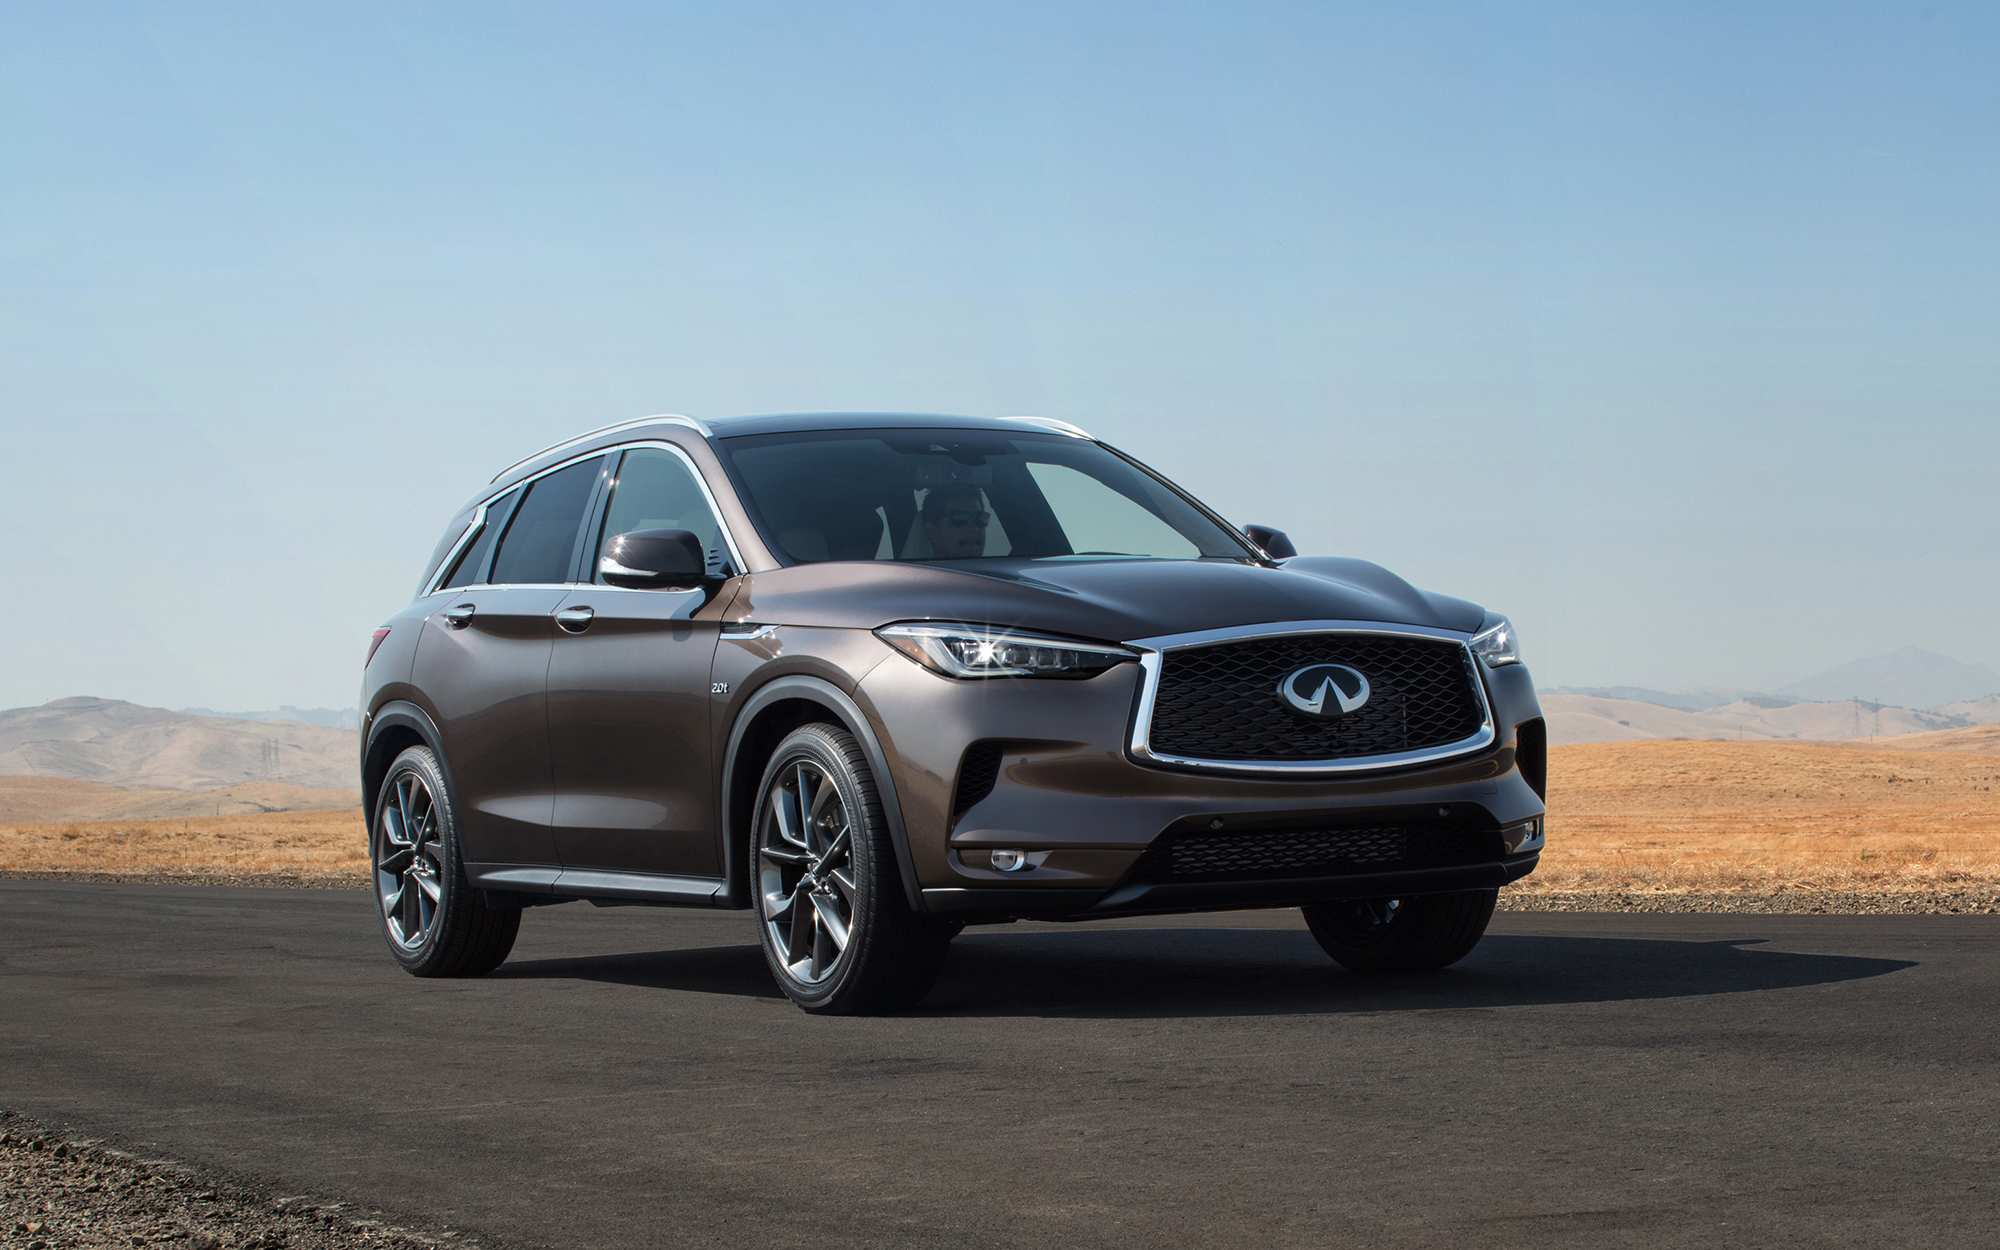 91 New The Infiniti Qx50 2019 Hybrid Concept Overview